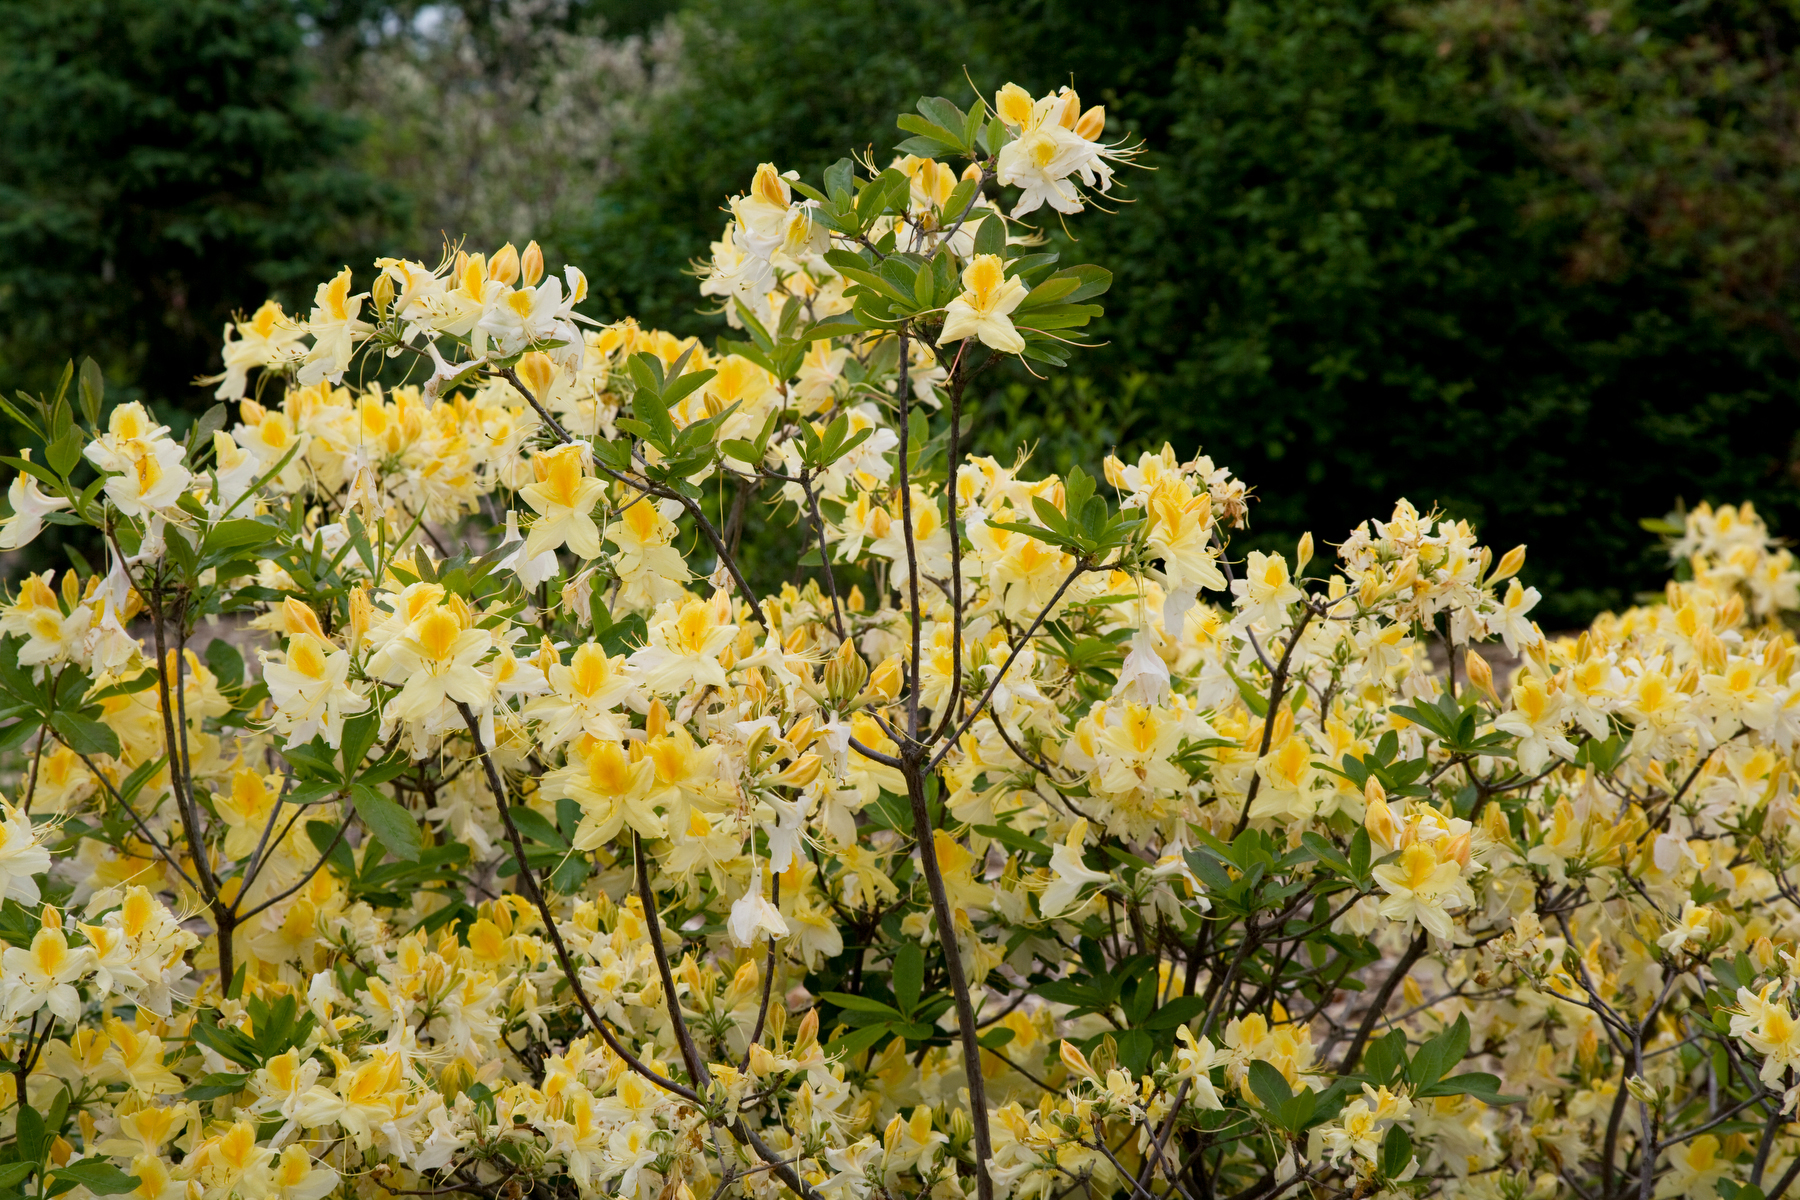 Northern Hilights Azalea